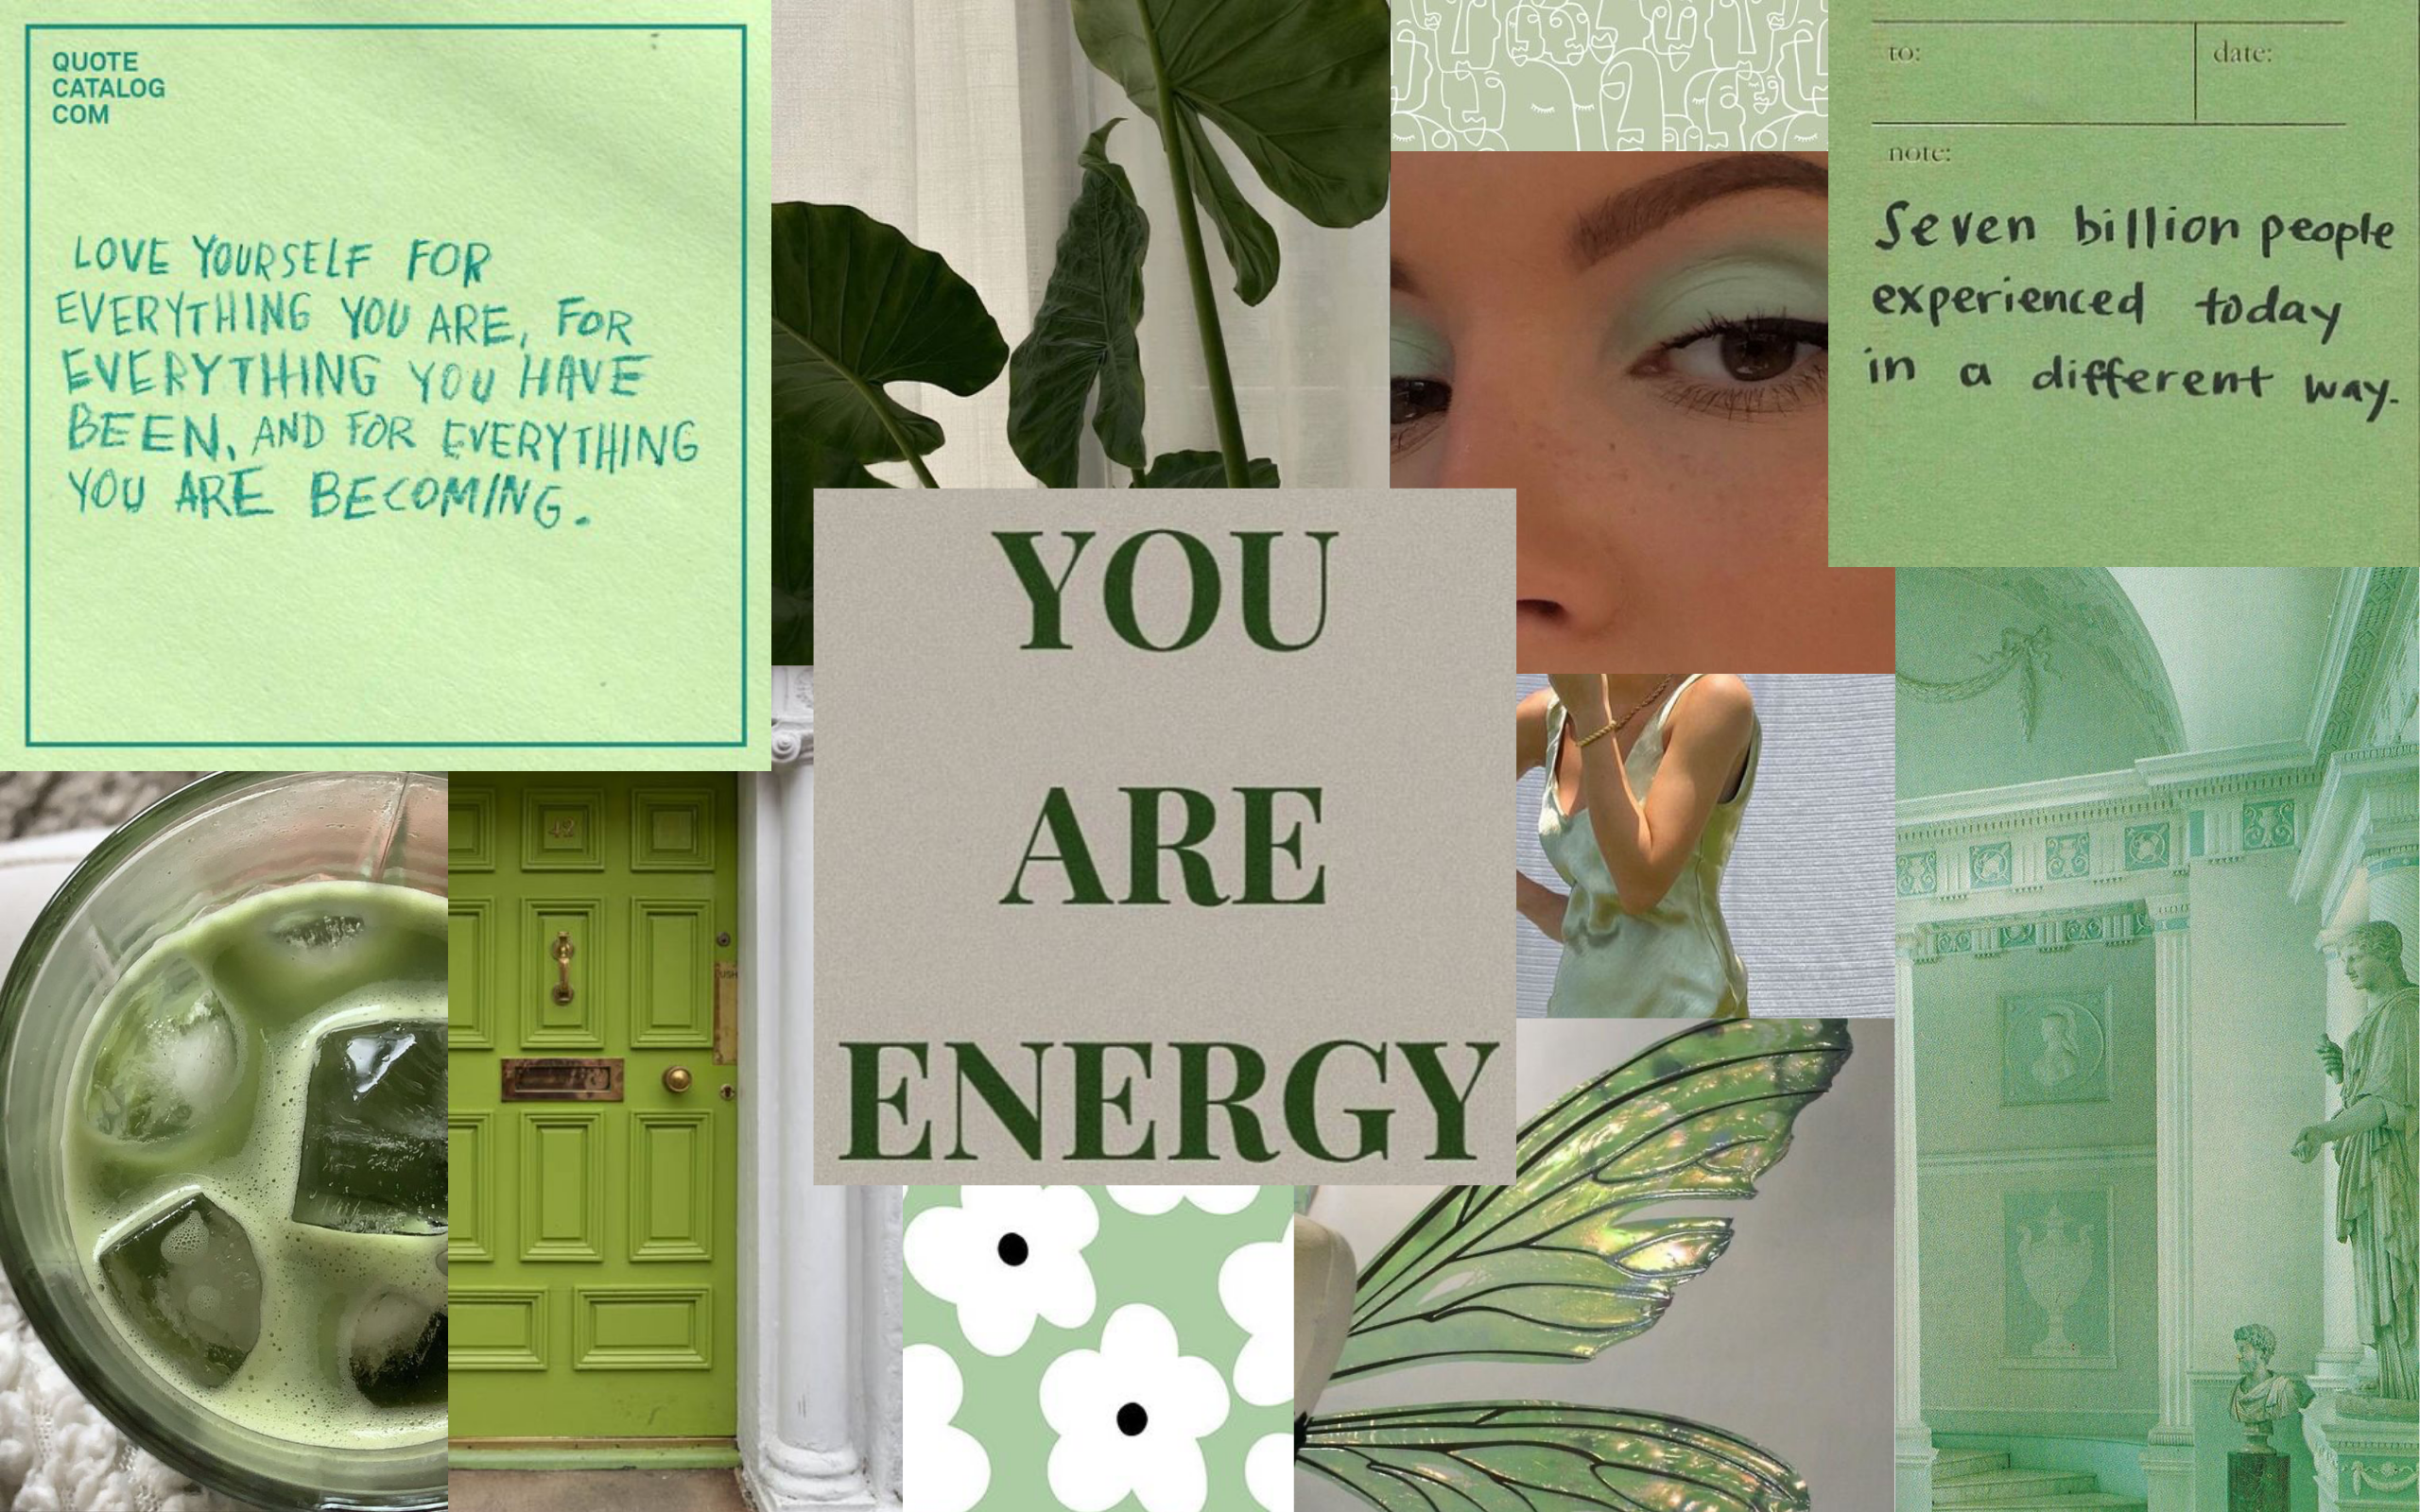 Sage Green Macbook Collage Wallpaper Collage Book Quote Catalog Wallpaper